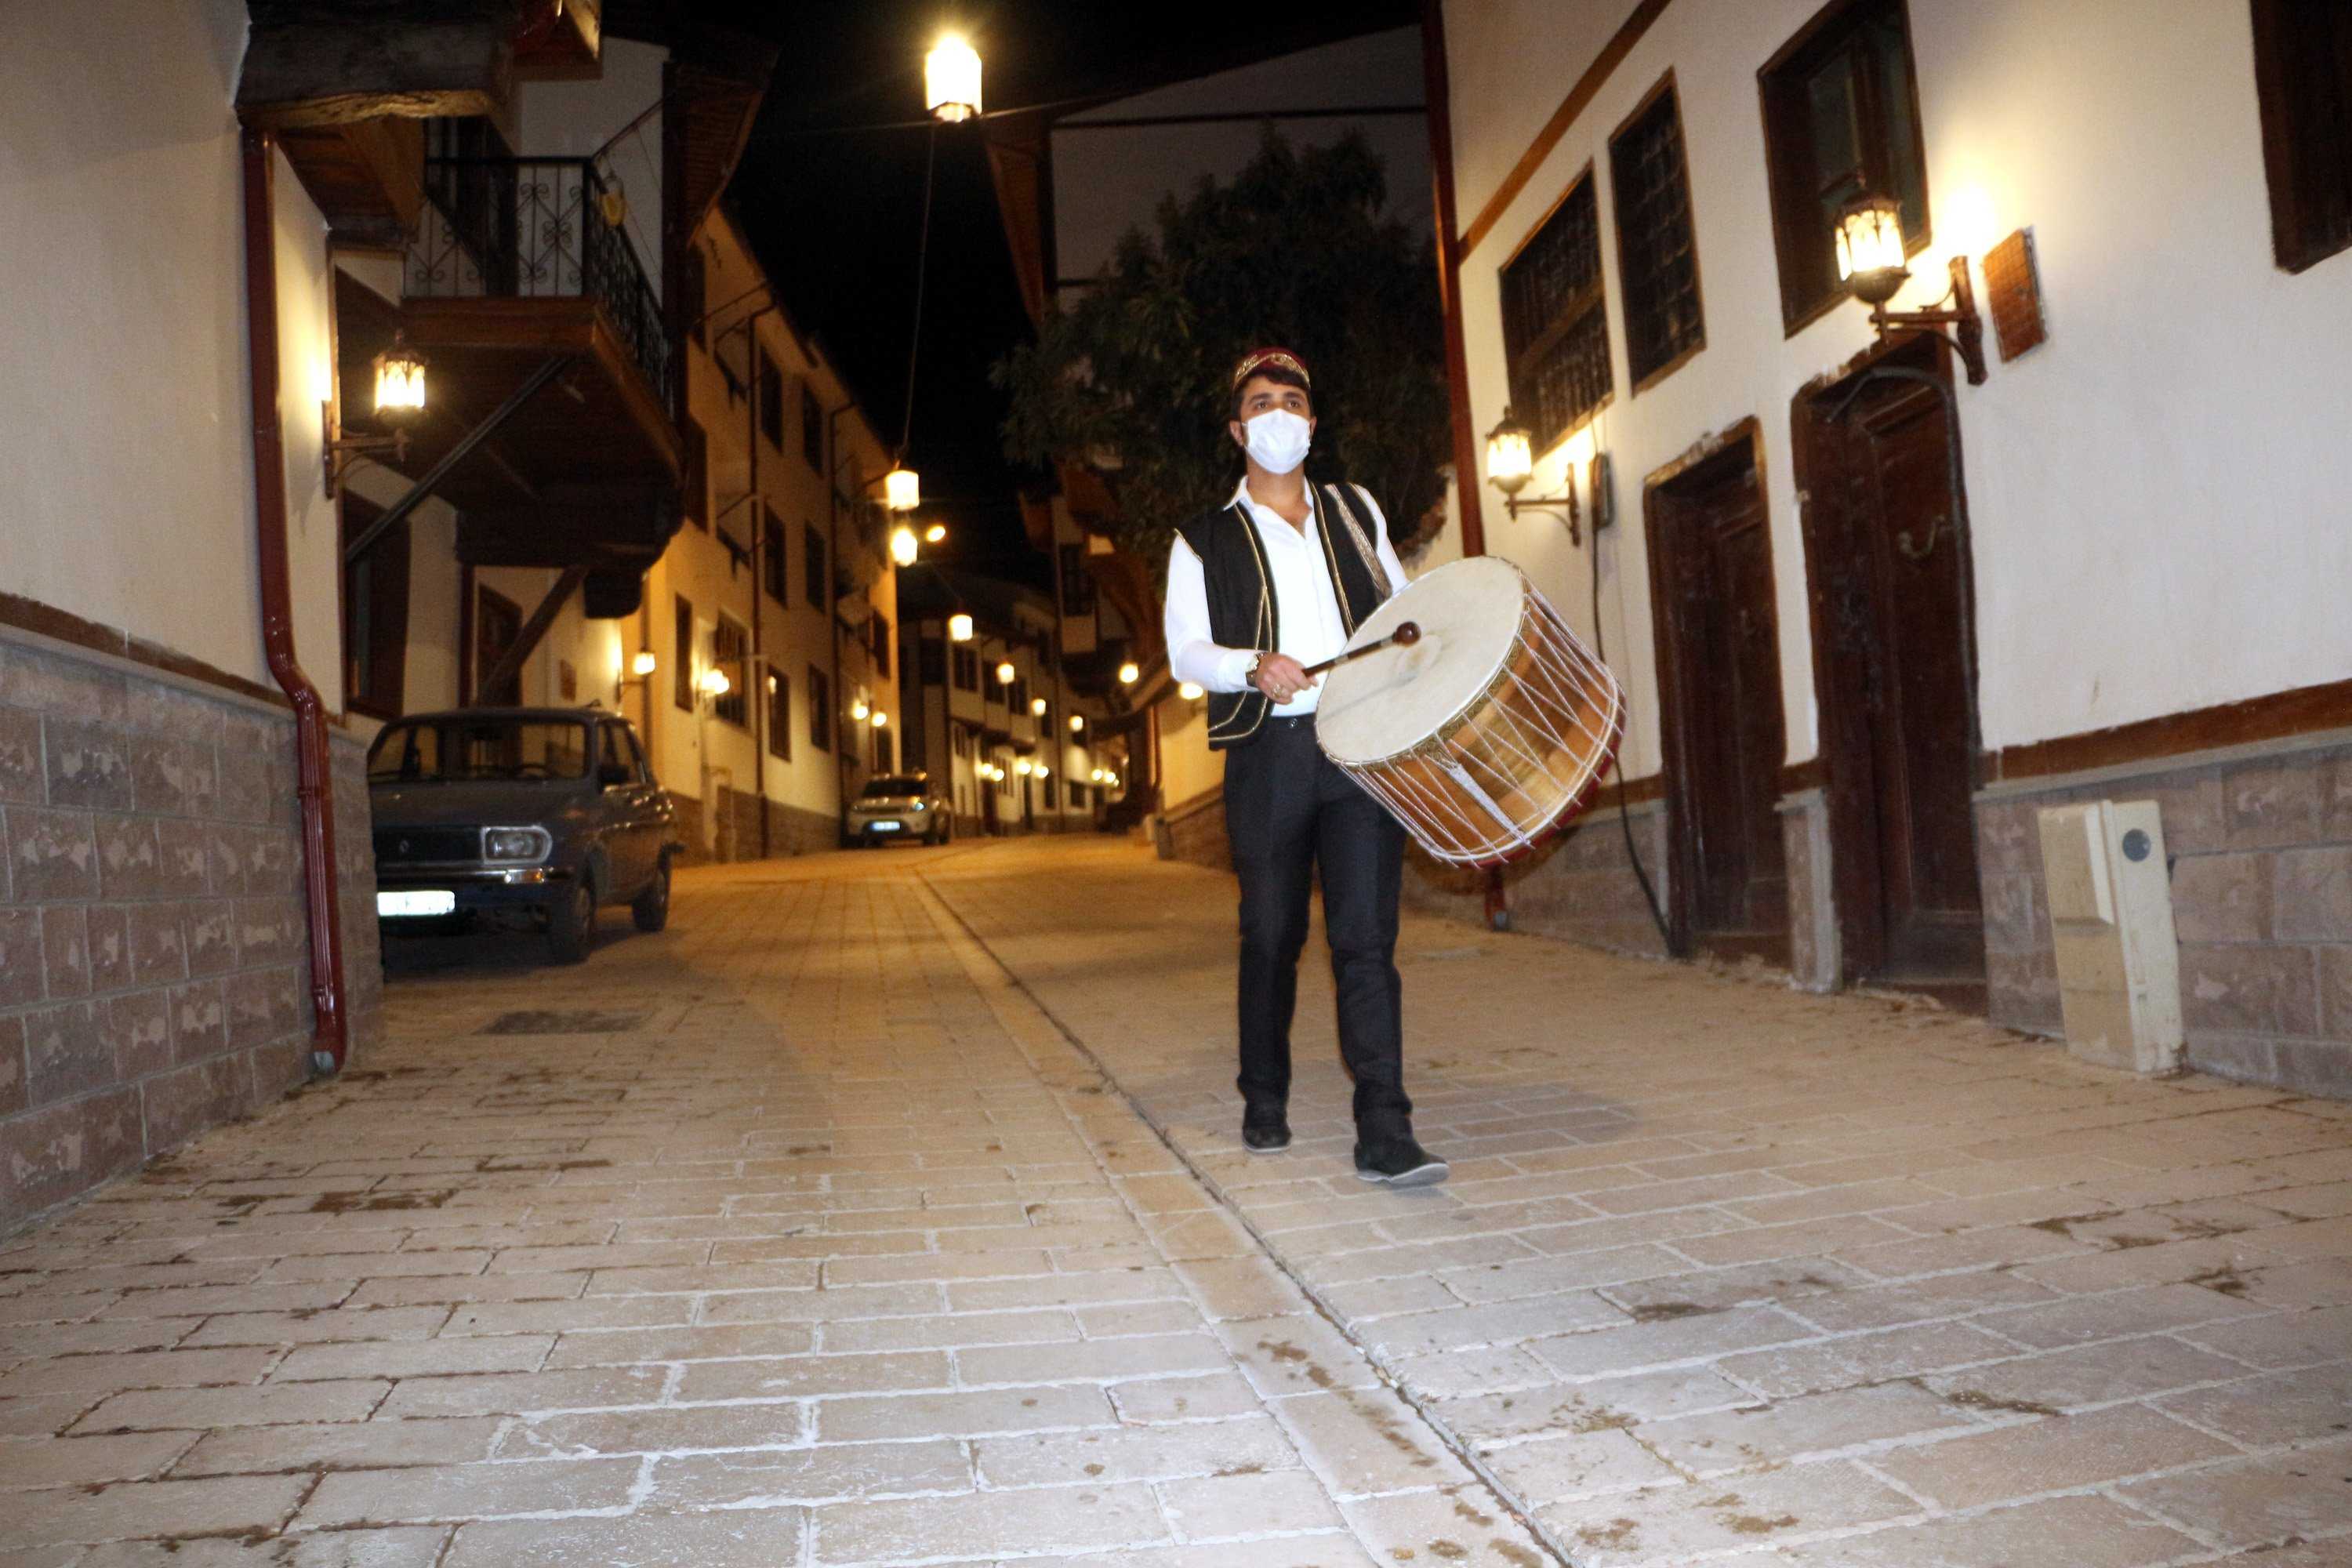 A dusk drummer wanders the streets while playing hand-held drums through the night, Tokat, Turkey, April 13, 2021. (DHA Photo)